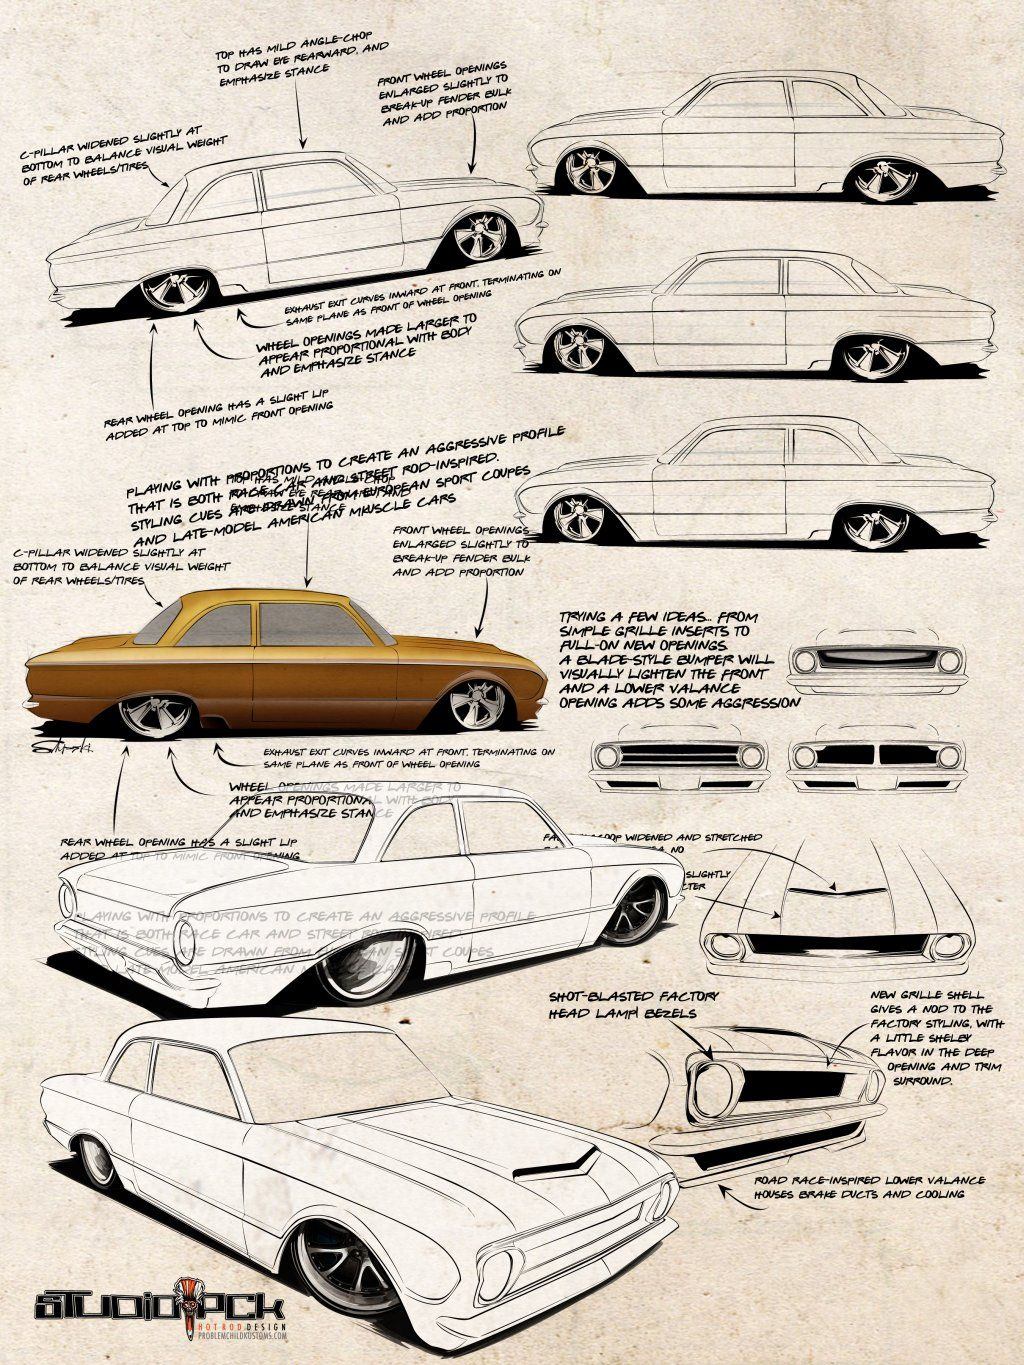 1965 ford falcon profile clipart clipart images gallery for.